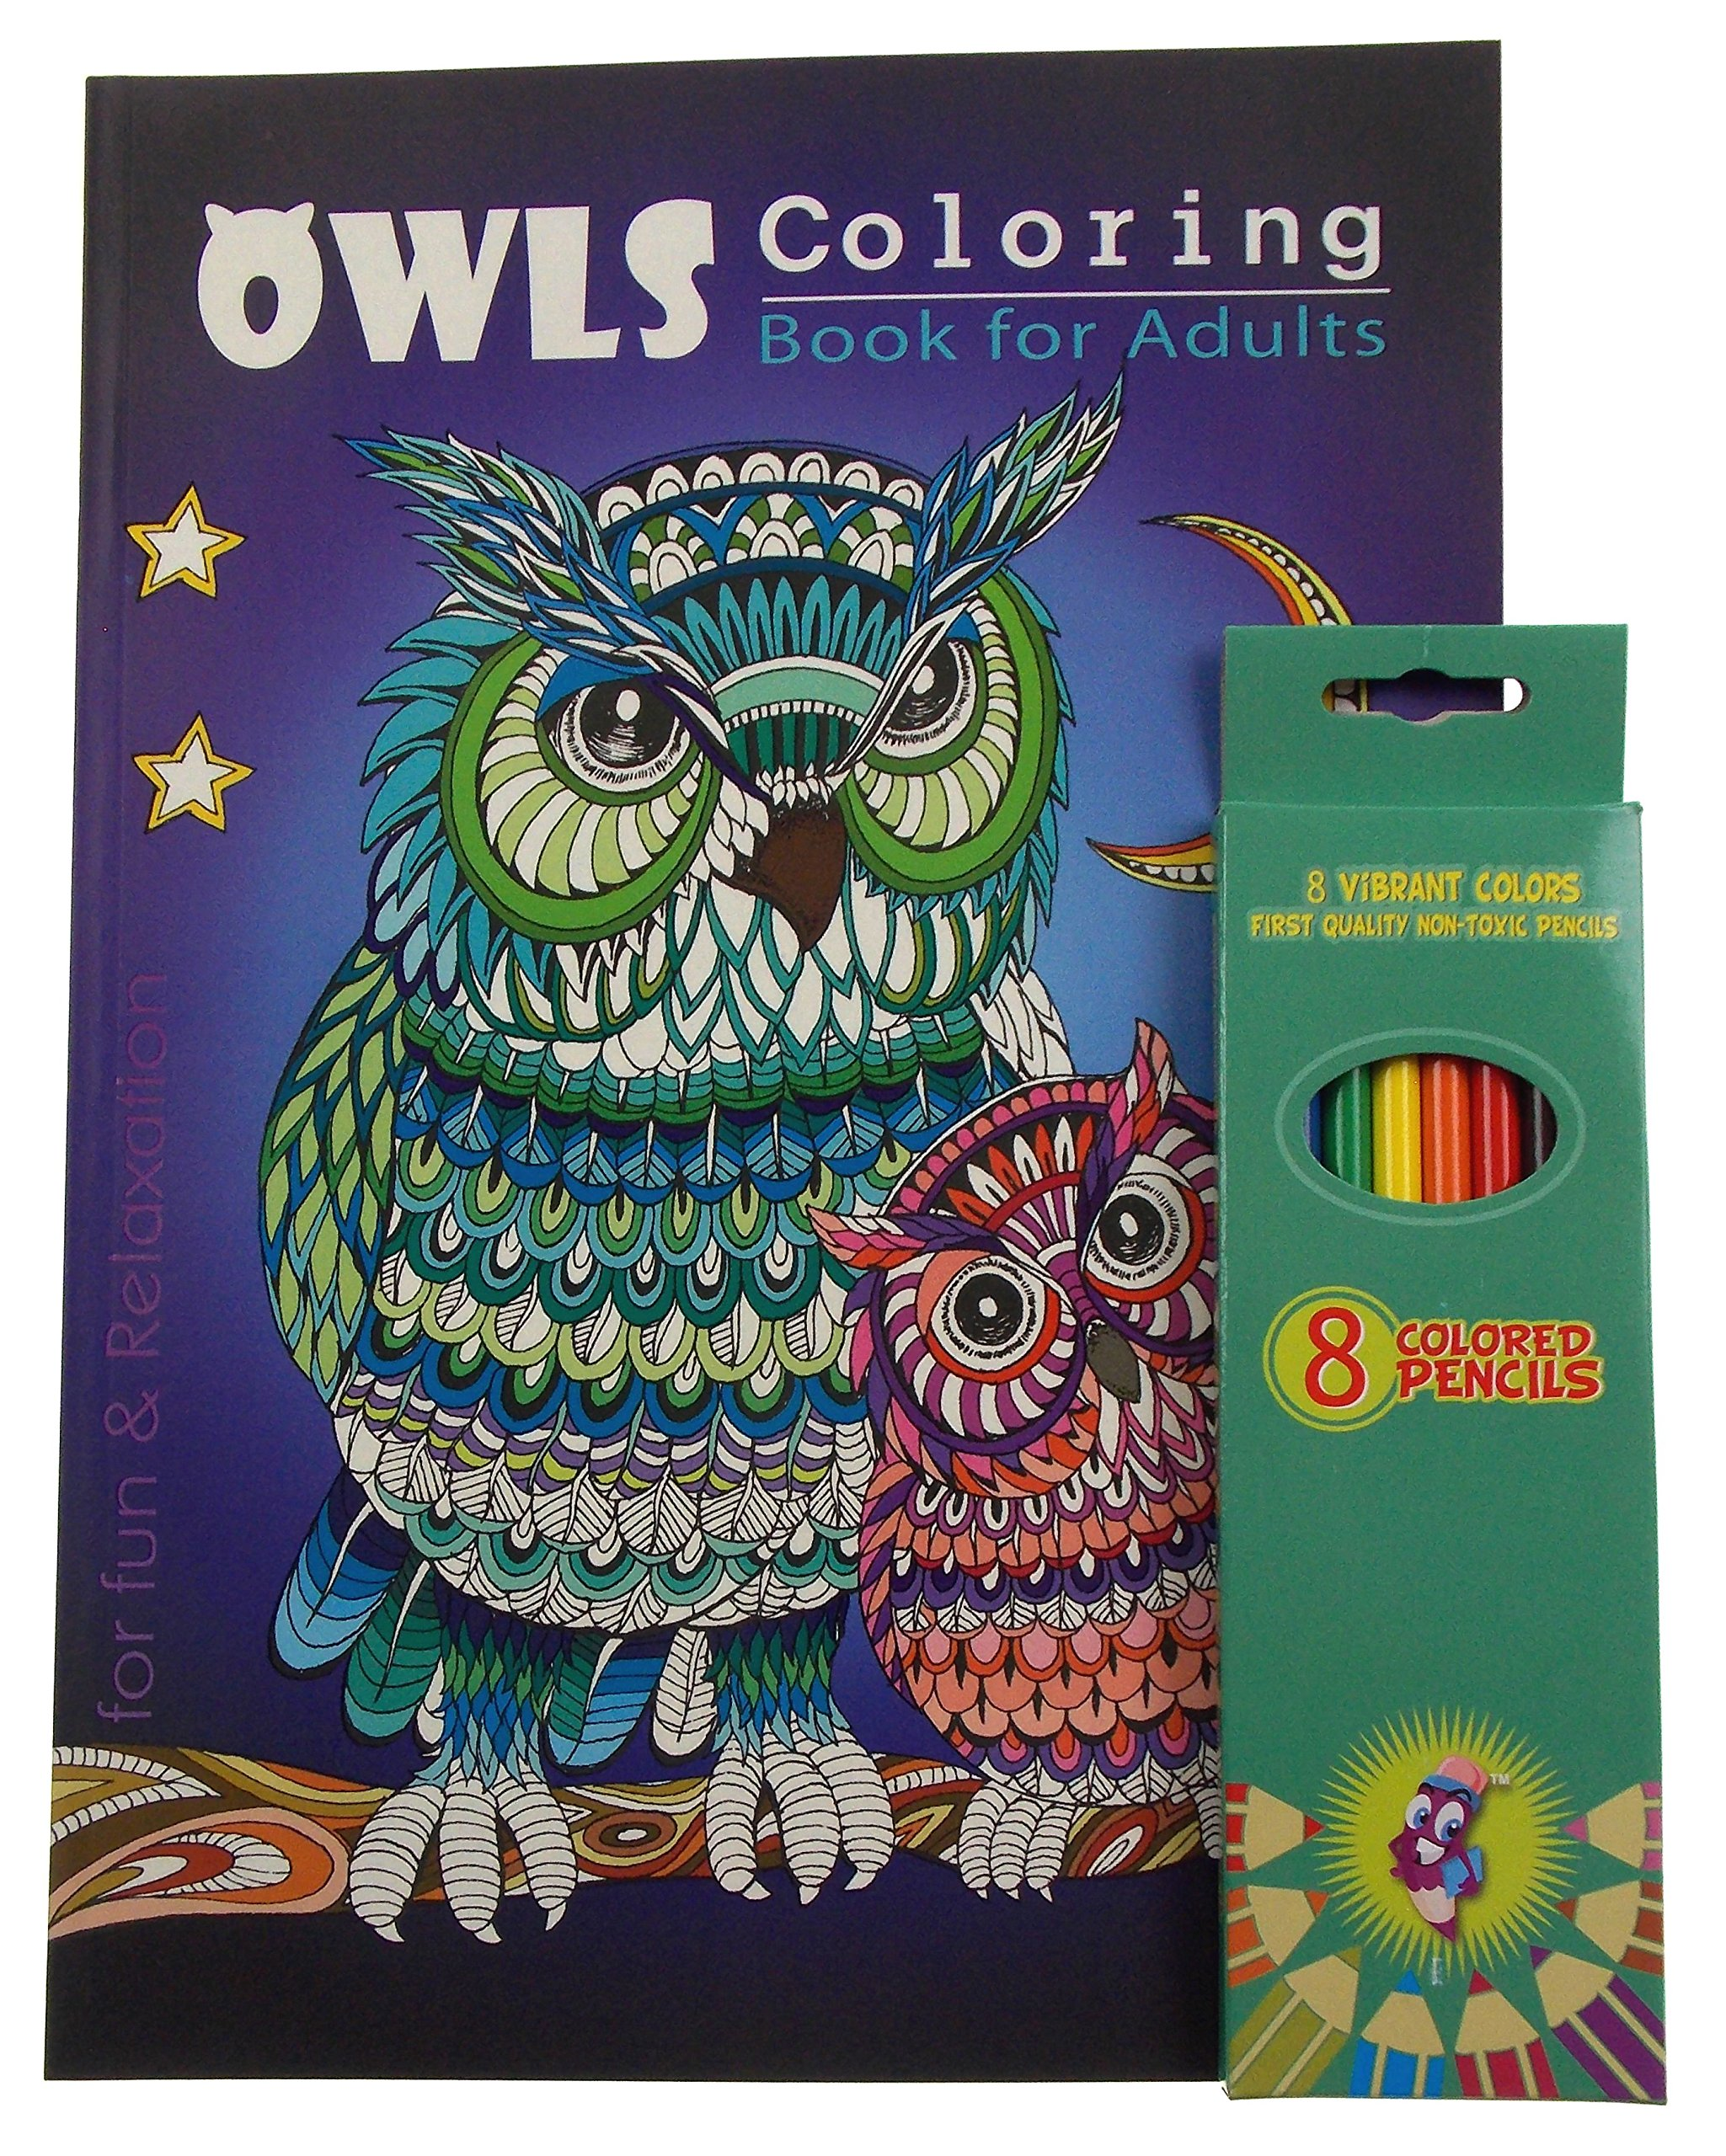 Hickoryville Owls Theme Adult and Teen Coloring Book Bundled With Vibrant Colored Pencils